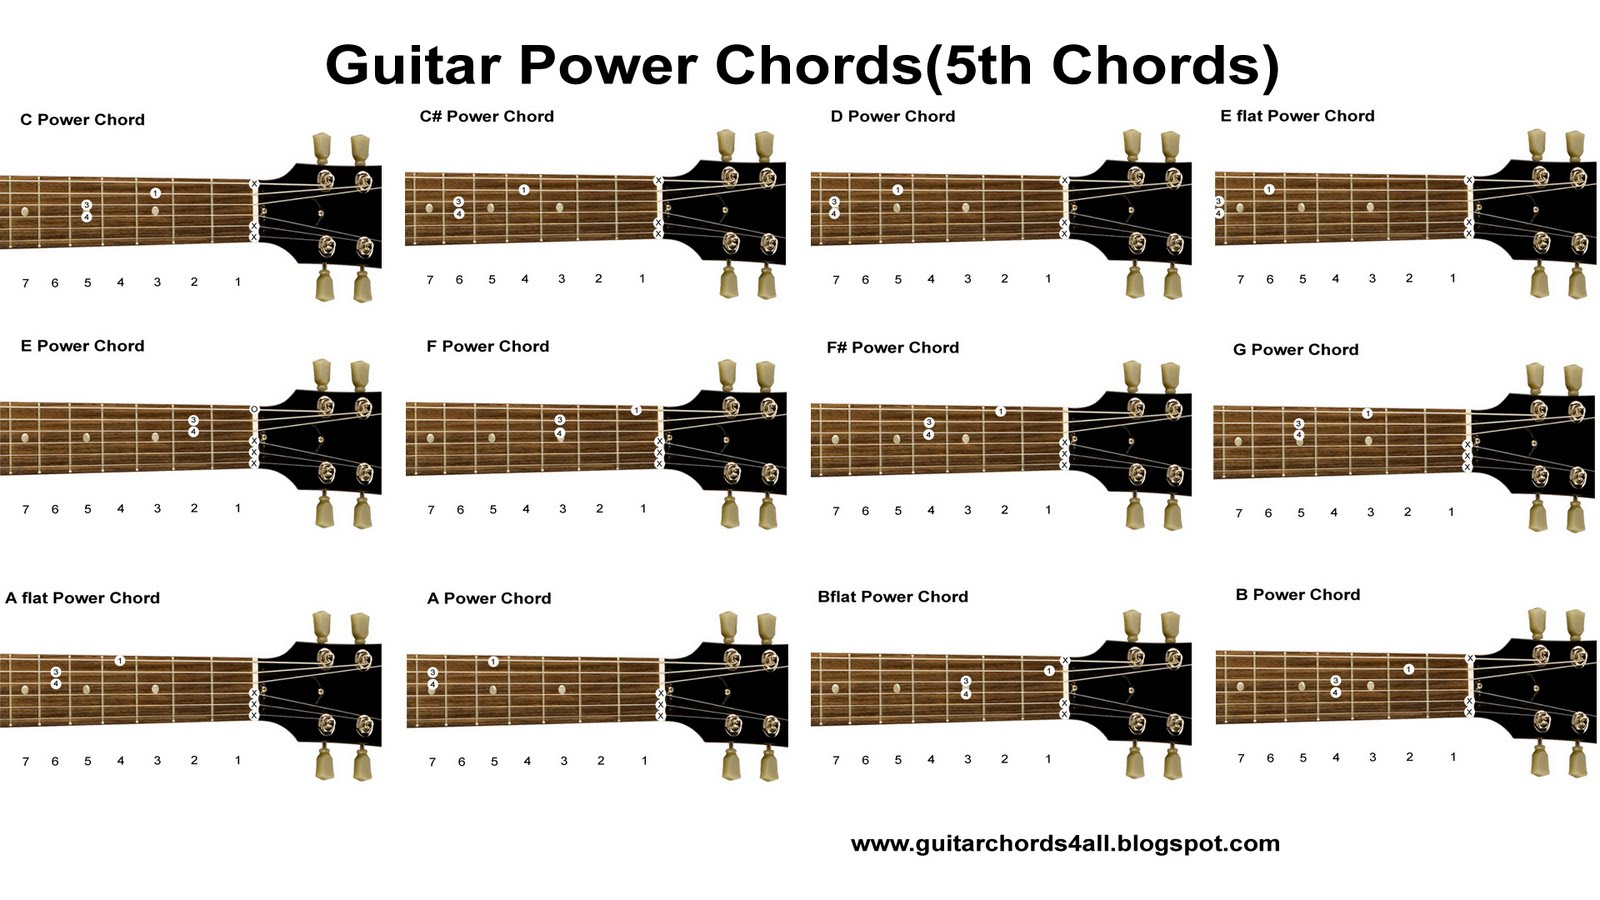 guitar chords guitar chords power chords. Black Bedroom Furniture Sets. Home Design Ideas